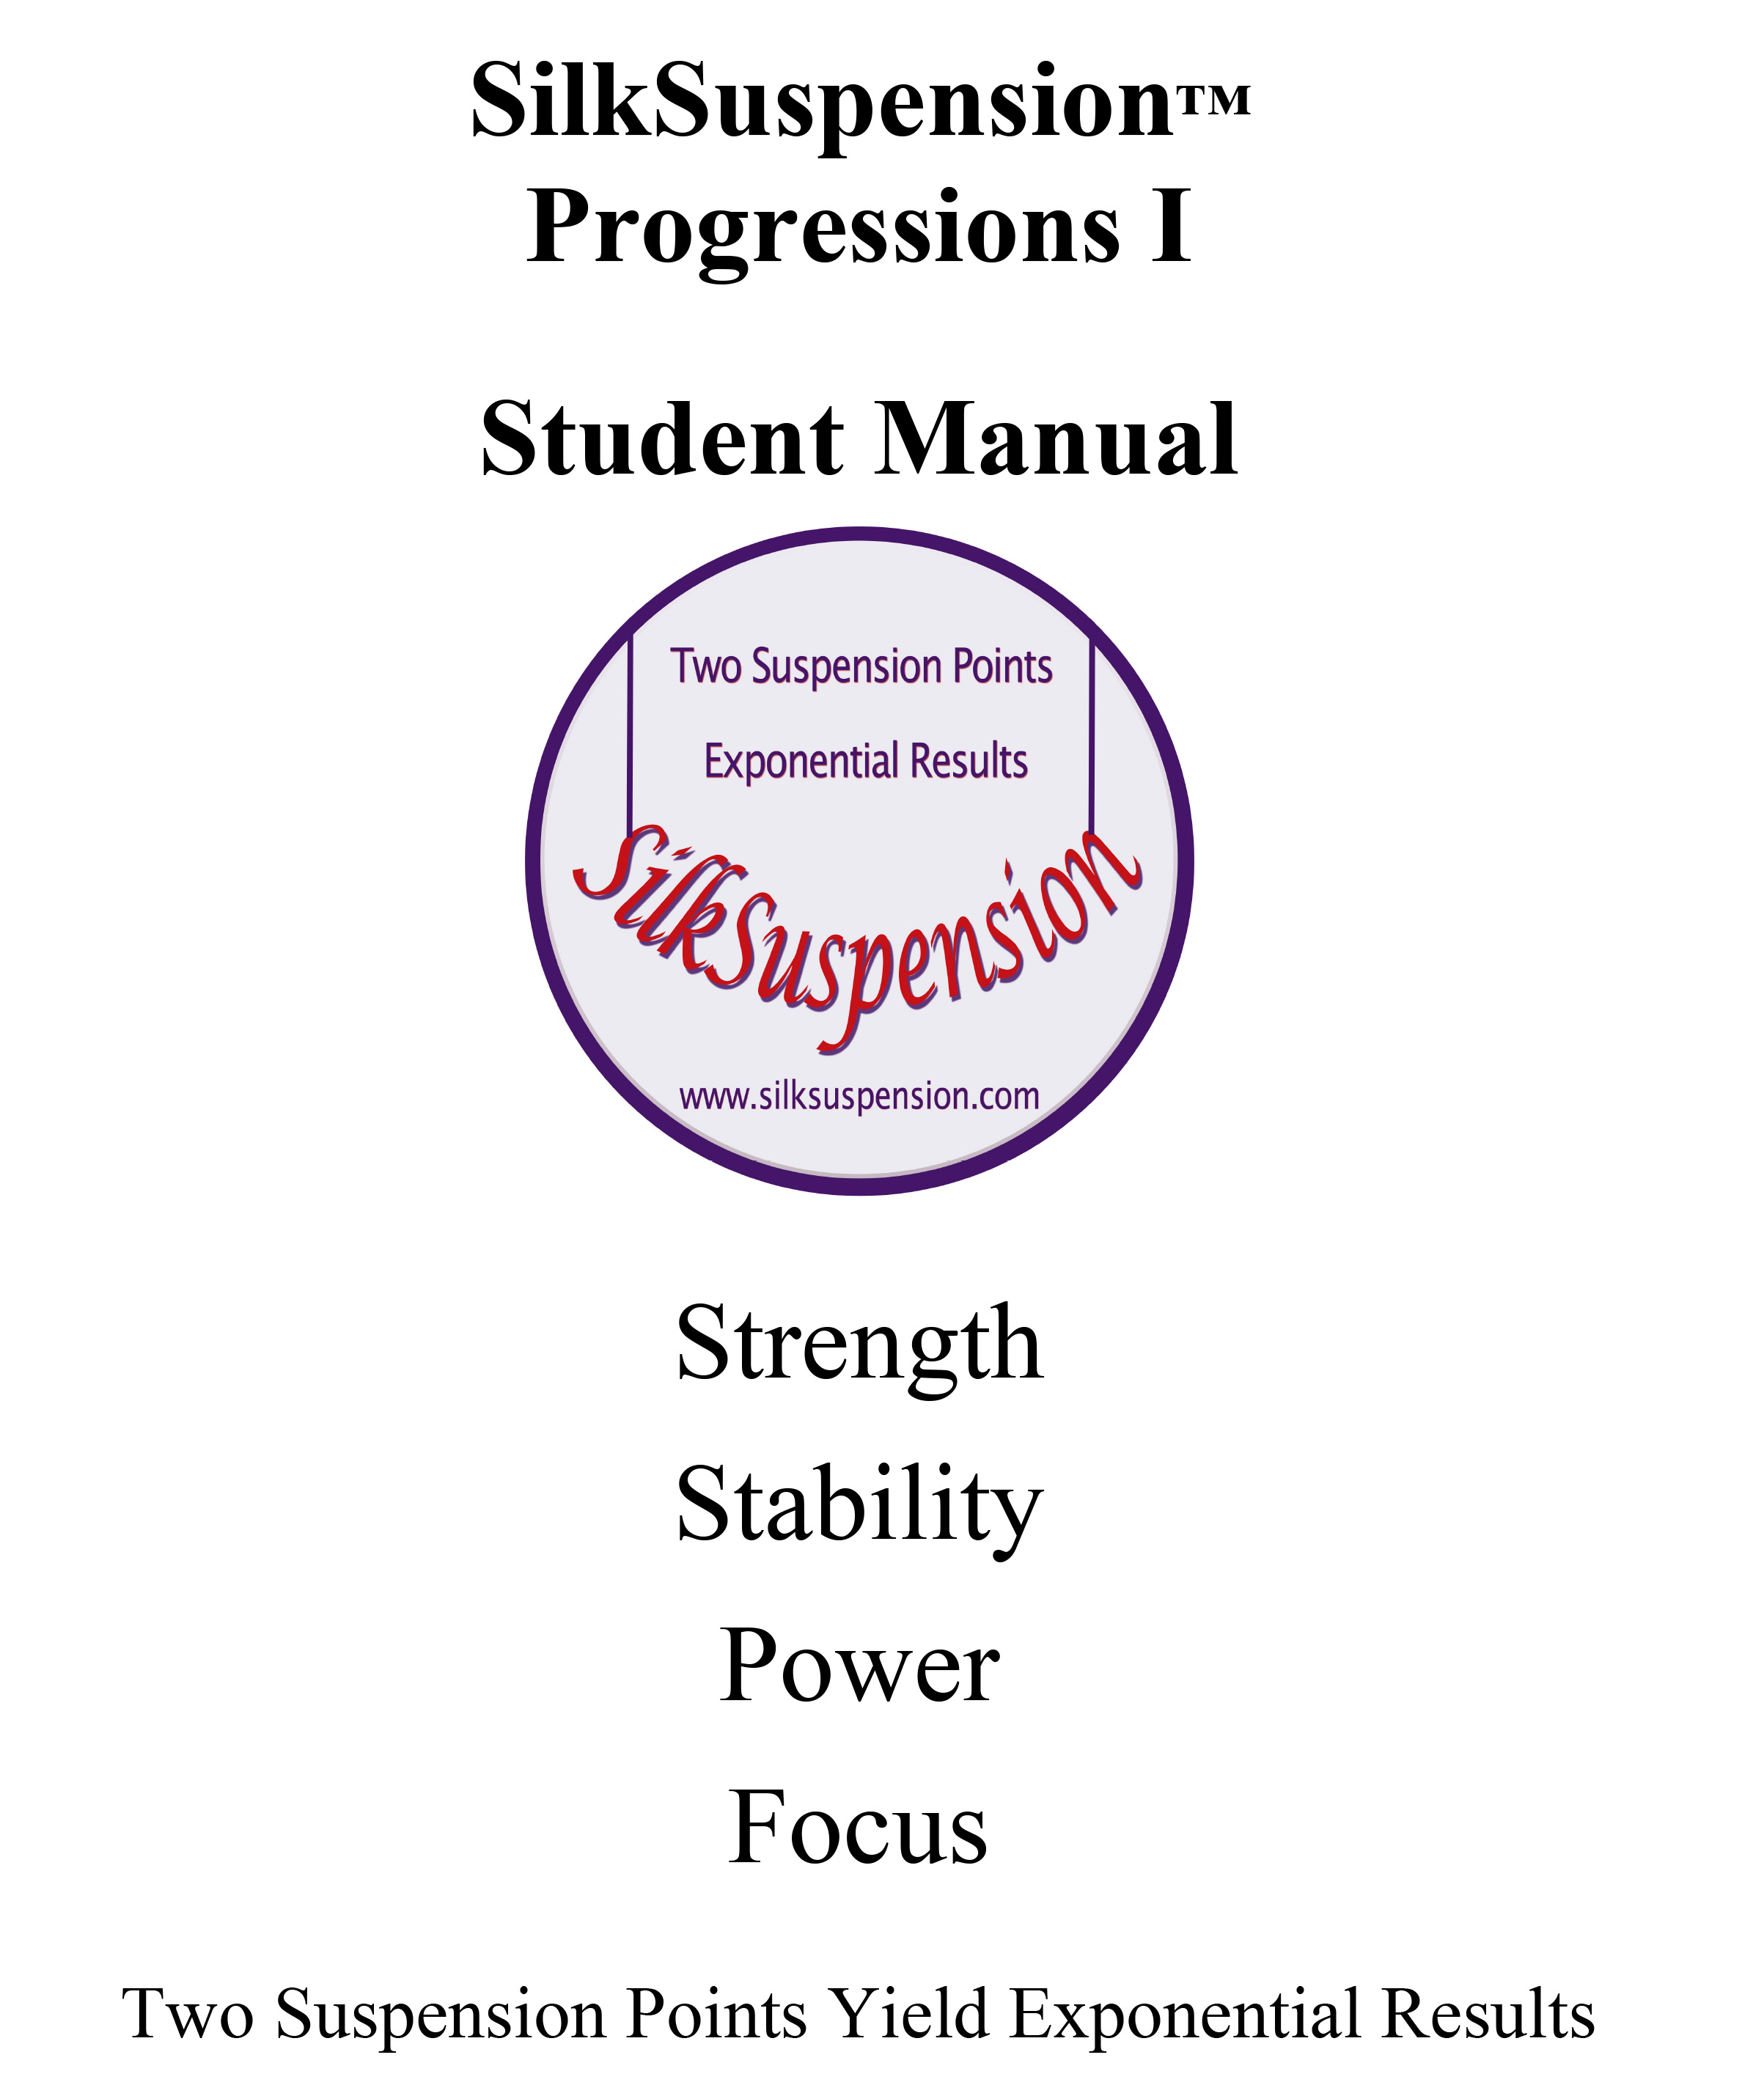 SilkSuspension Progressions I